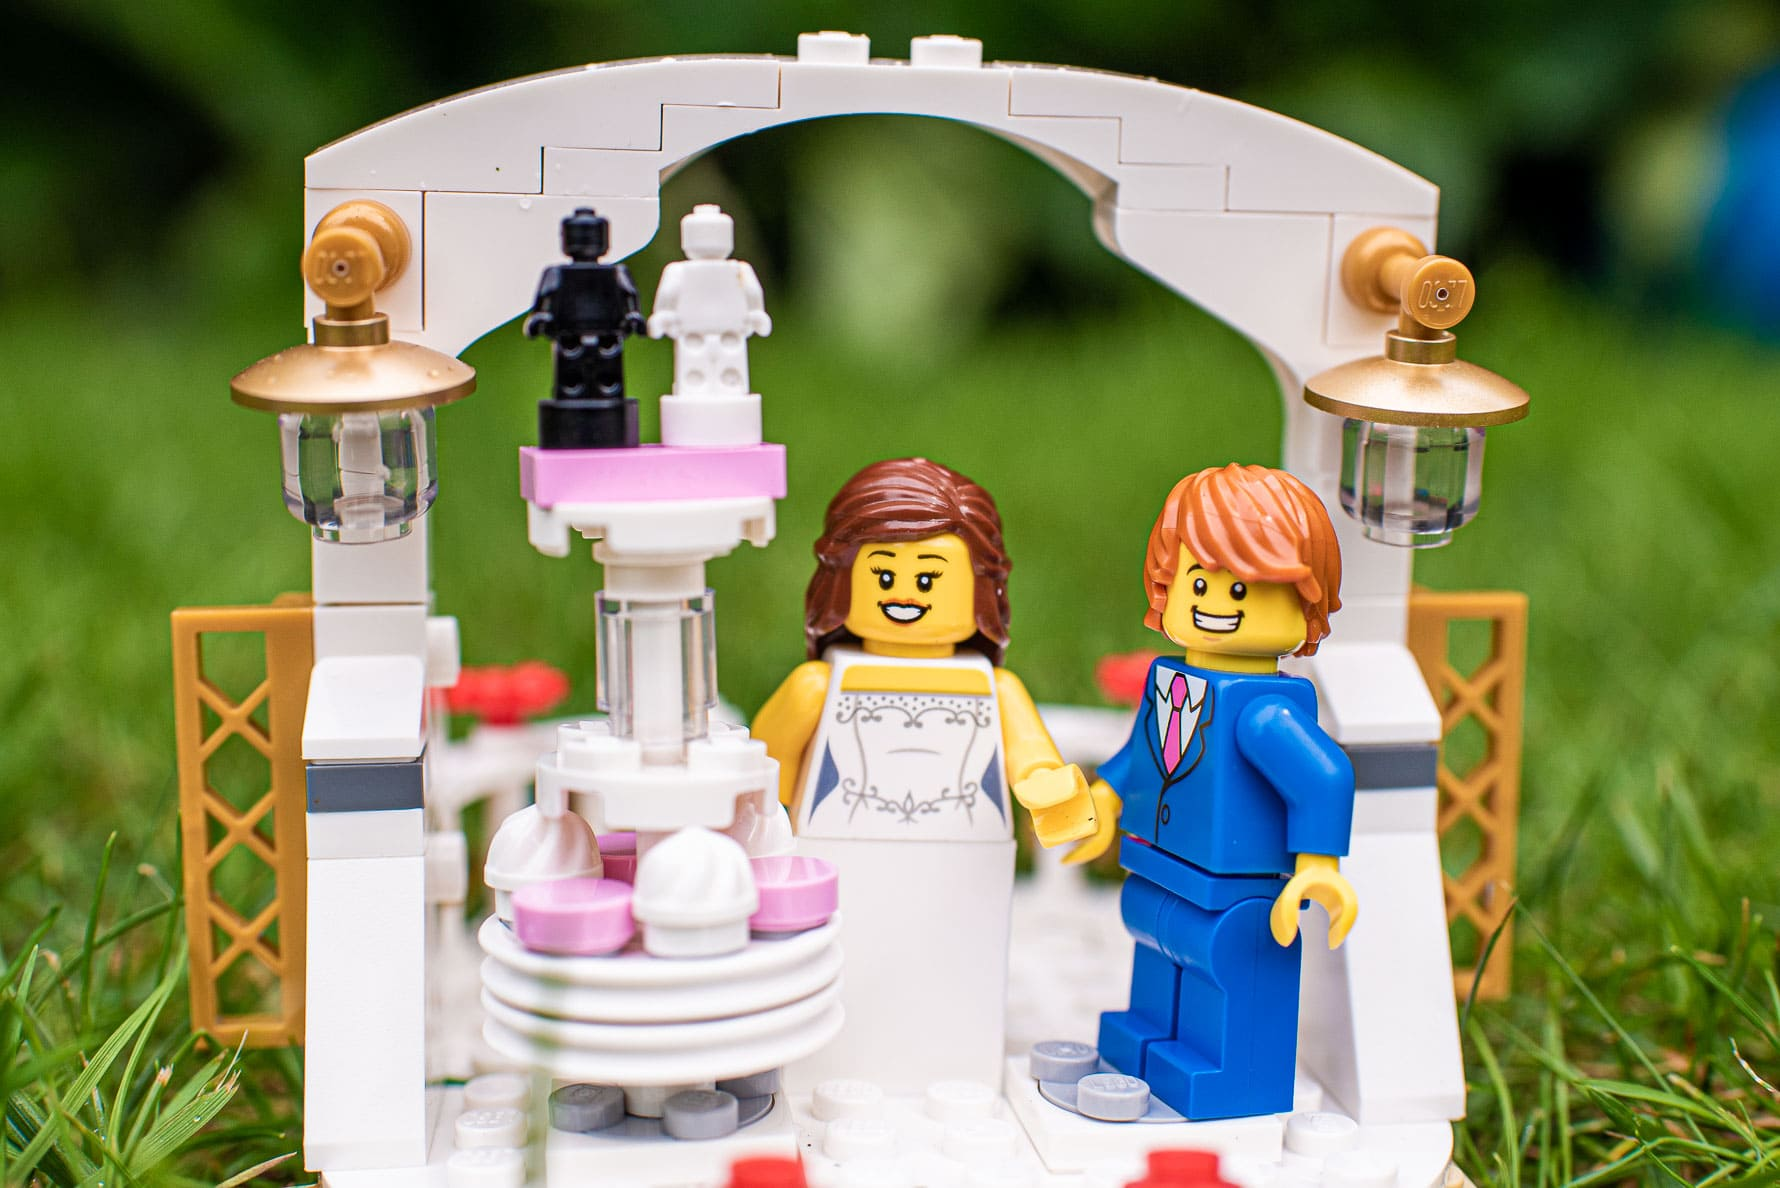 Lego wedding couple prepare to cut their cake